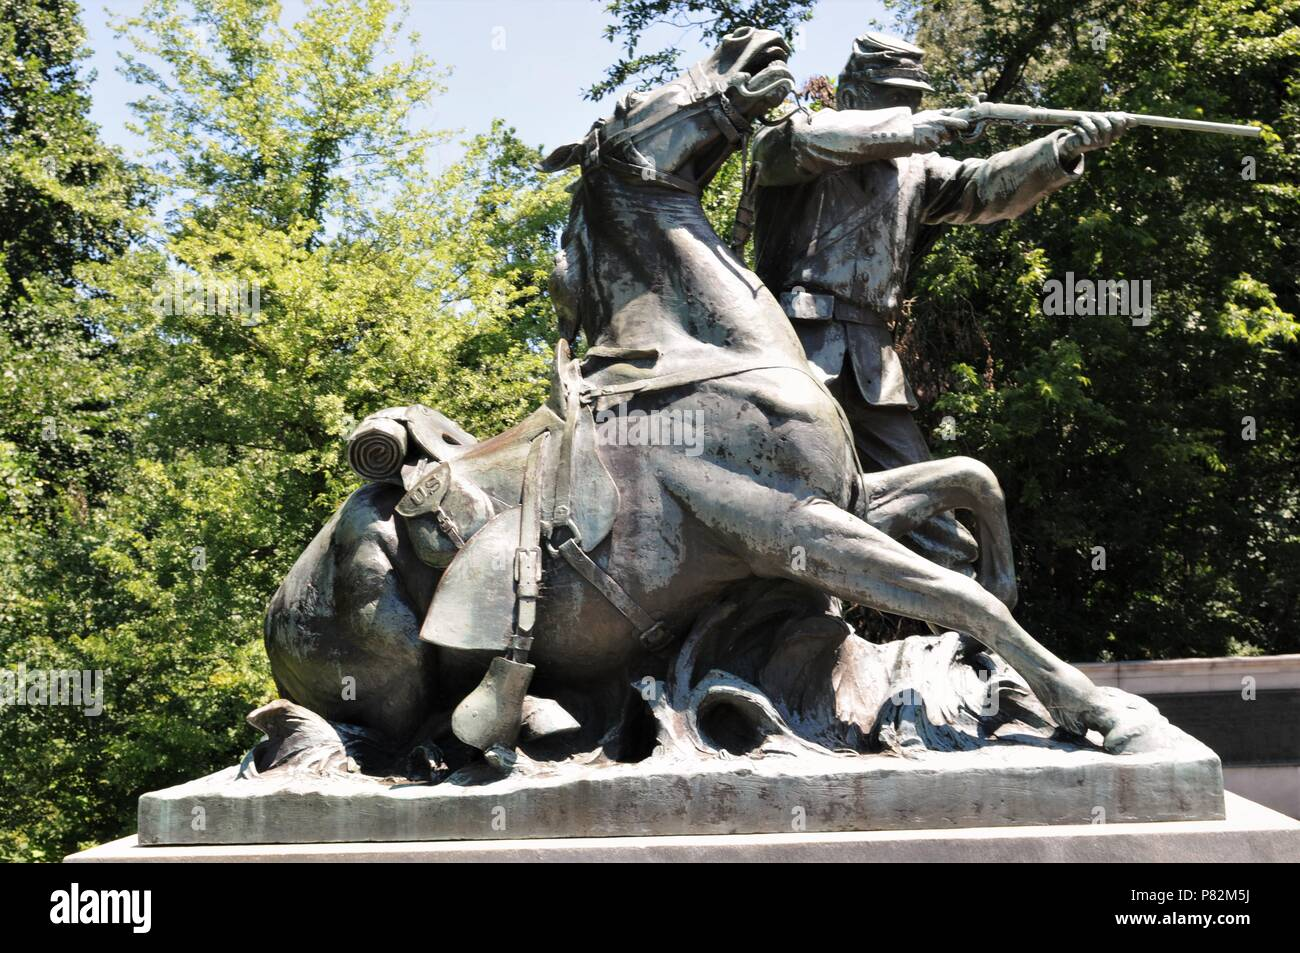 Cavalryman statue on the Wisconsin Monument in the Vicksburg National Military Park, Vicksburg, Mississippi - Stock Image